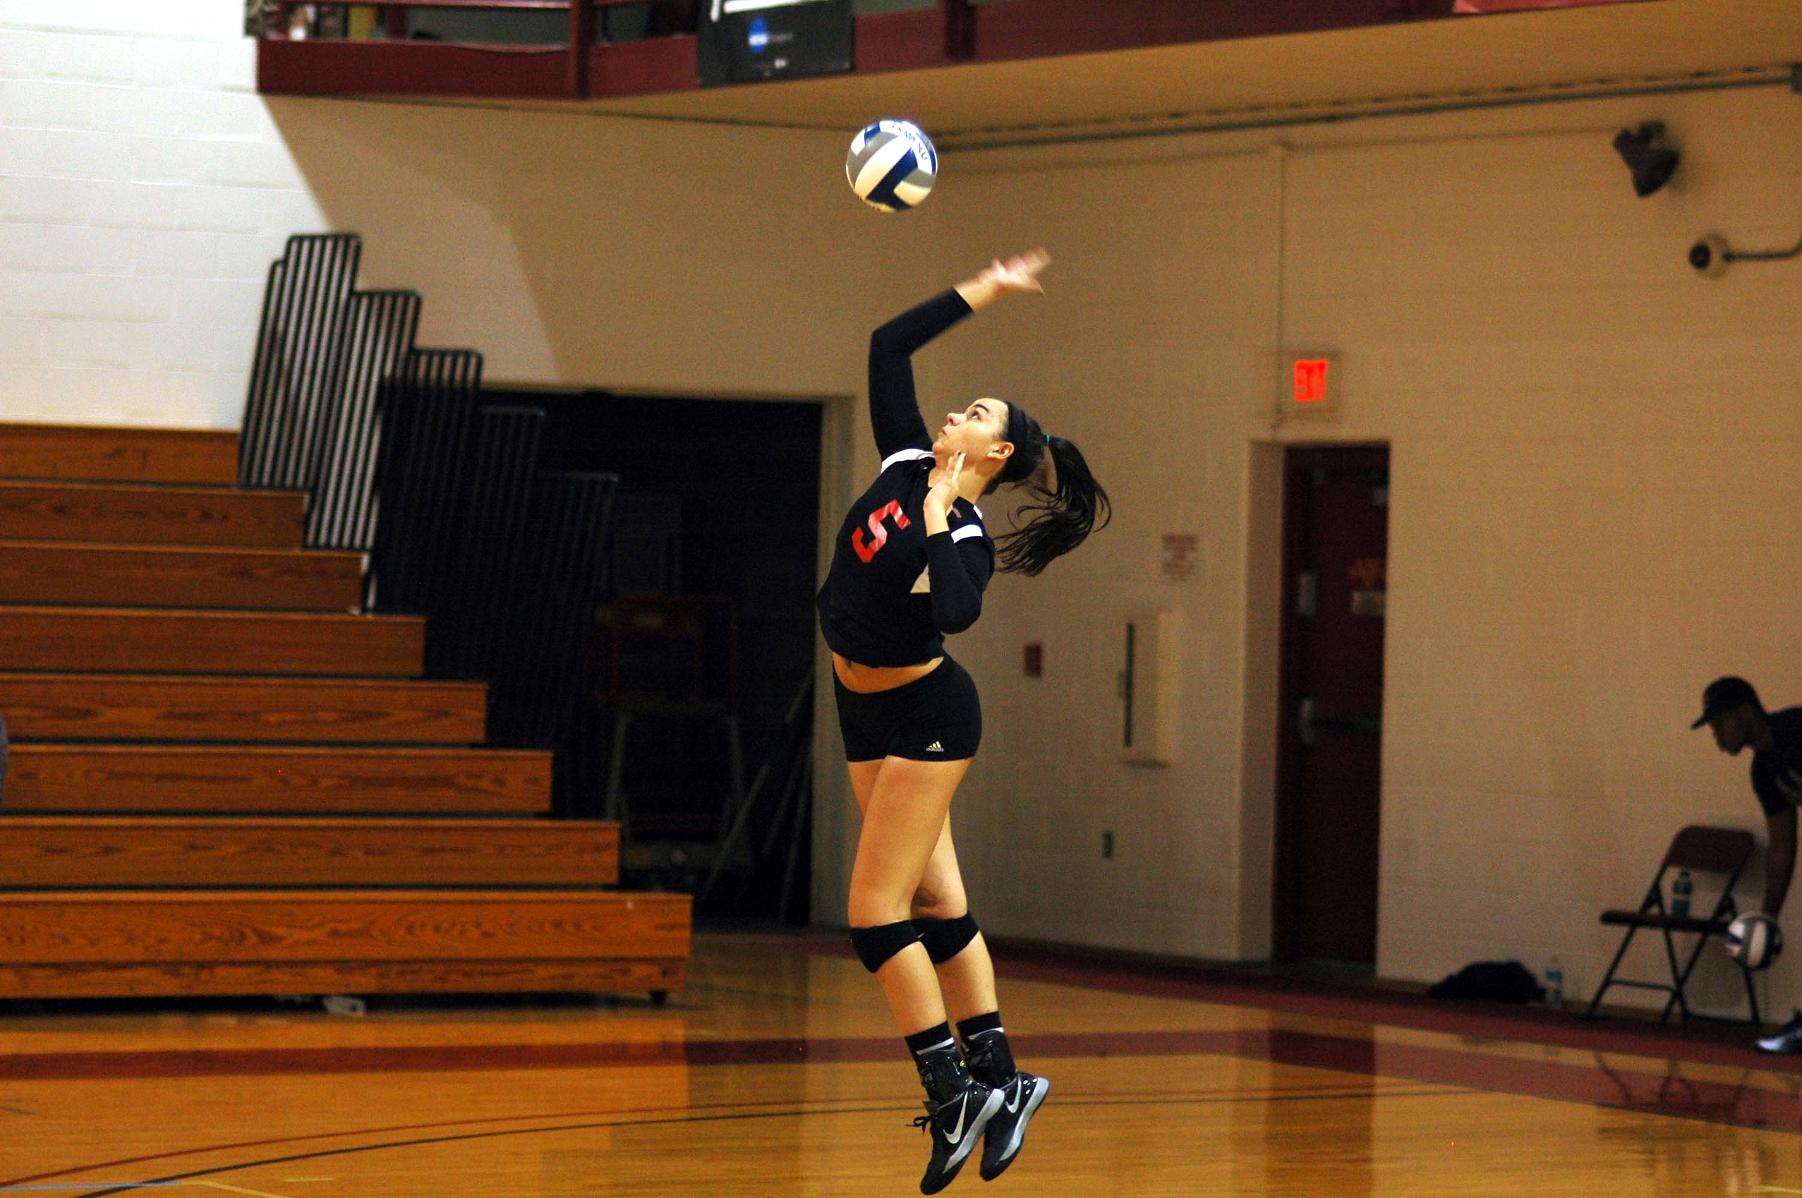 WOMEN'S VOLLEYBALL FALL ON FINAL DAY OF SKYHAWK INVITATIONAL